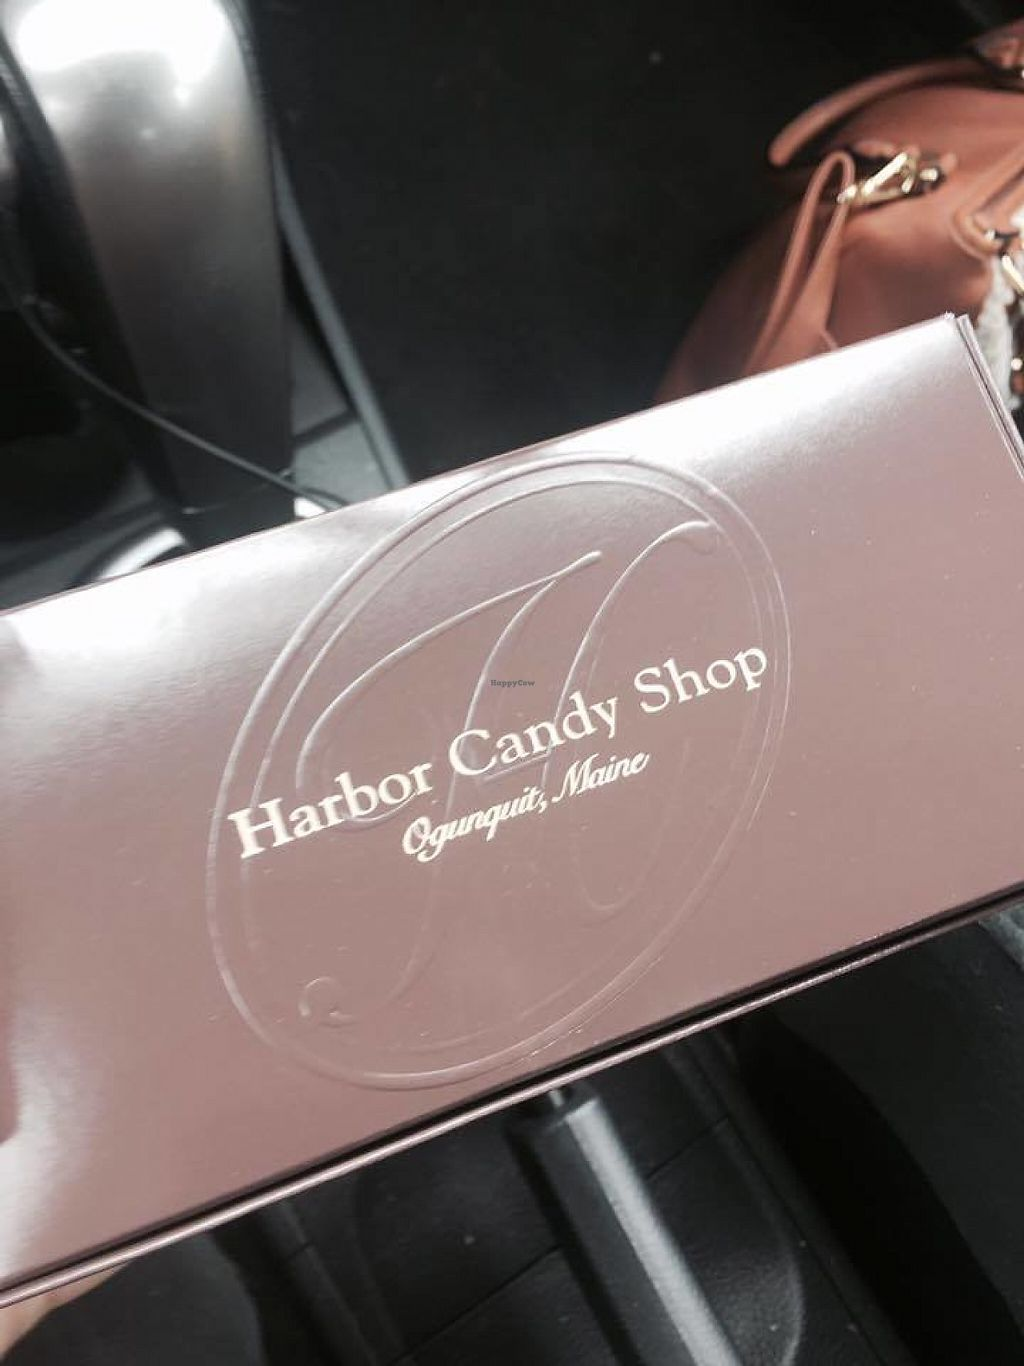 "Photo of Harbor Candy Shop  by <a href=""/members/profile/Bgeezy"">Bgeezy</a> <br/>Box chocolates came in <br/> May 8, 2017  - <a href='/contact/abuse/image/90939/257208'>Report</a>"